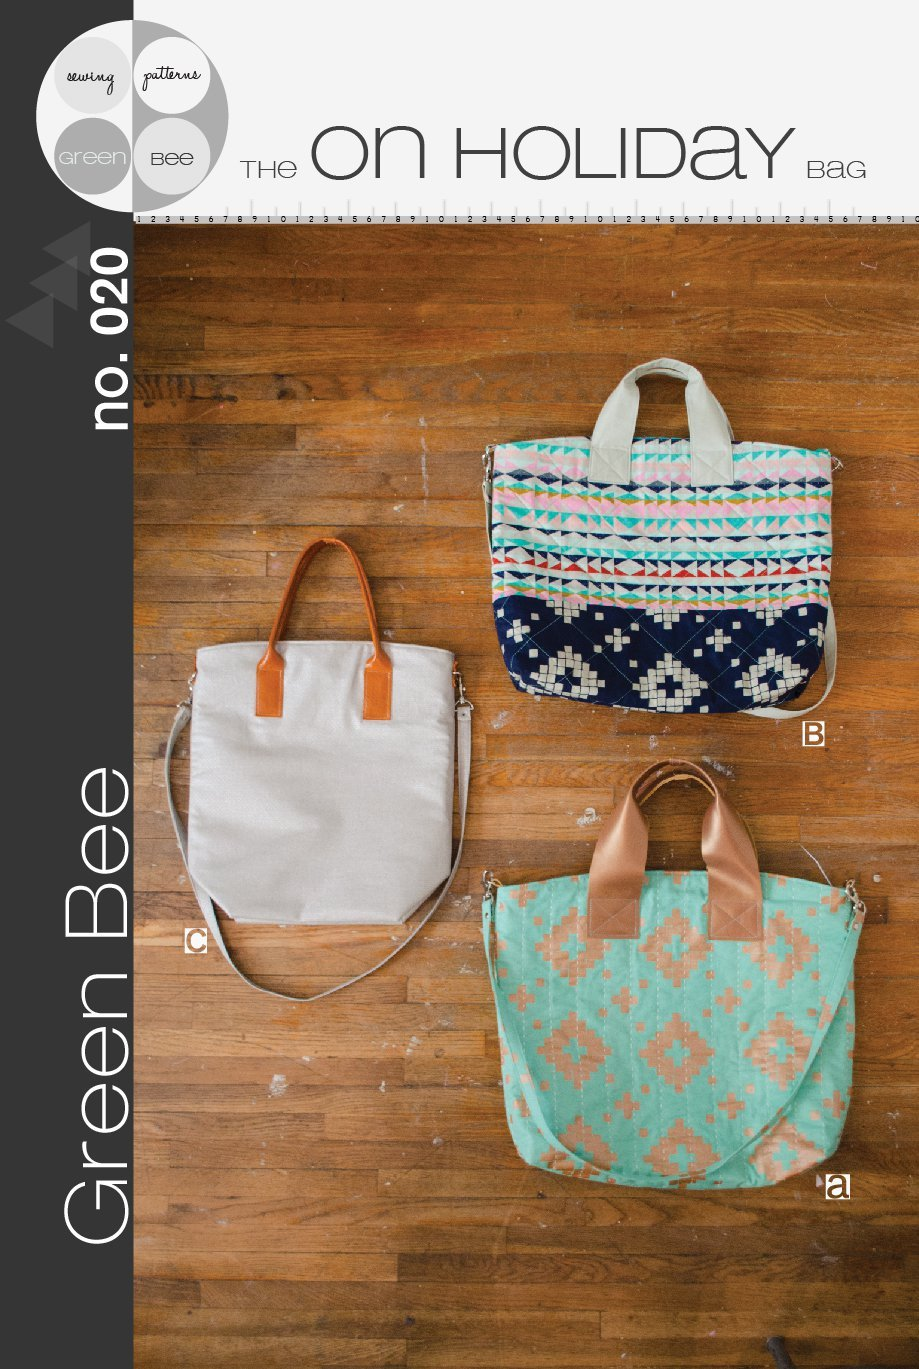 green bee design on holiday bag sewing pattern